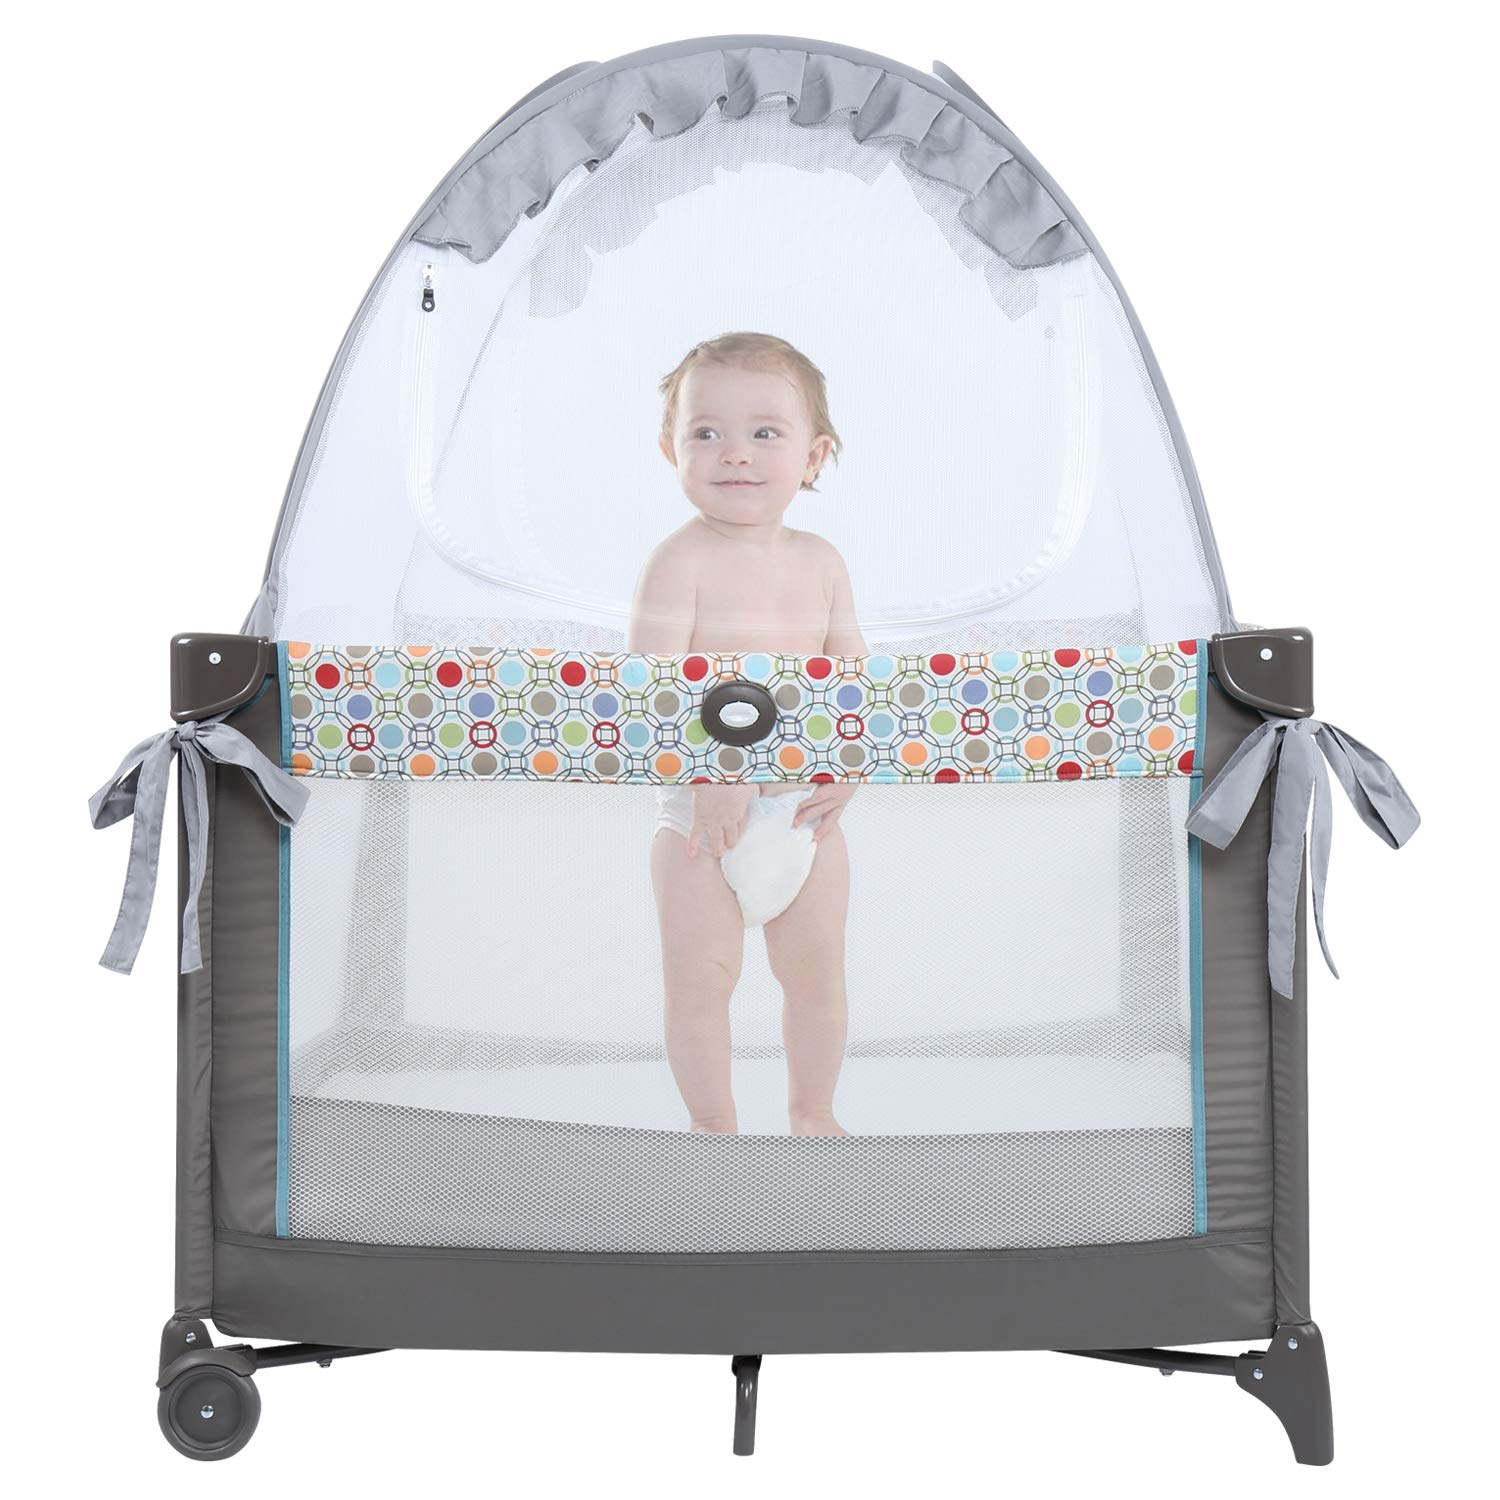 Minnebaby Pack N Play Tent, Keep Baby from Climbing Out, Mini Crib Safety Mesh Canopy, Play Yard Tent Cover, See Through and Breathable, Against Cats and Mosquitoes